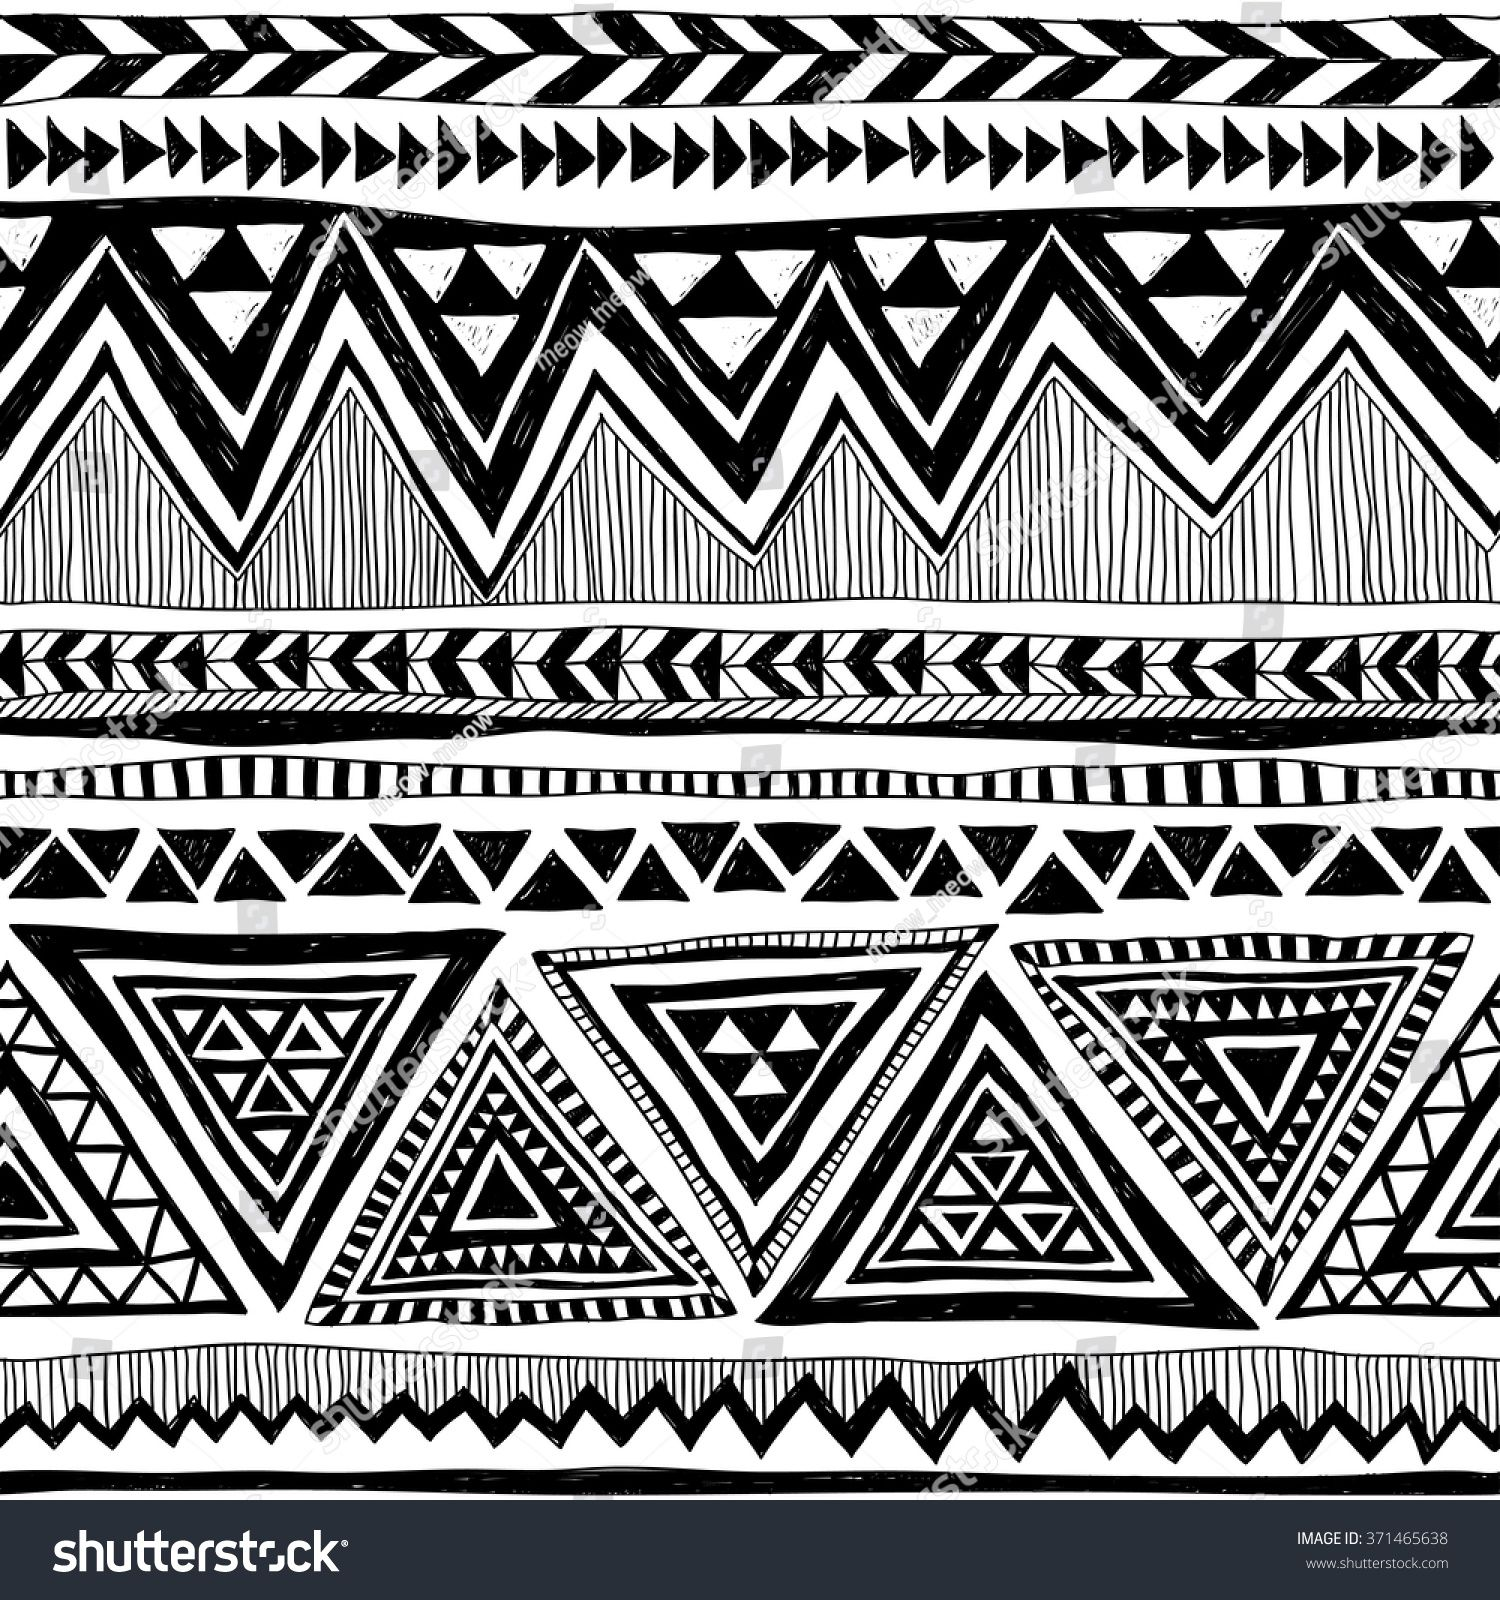 black and white tribal navajo vector seamless pattern with